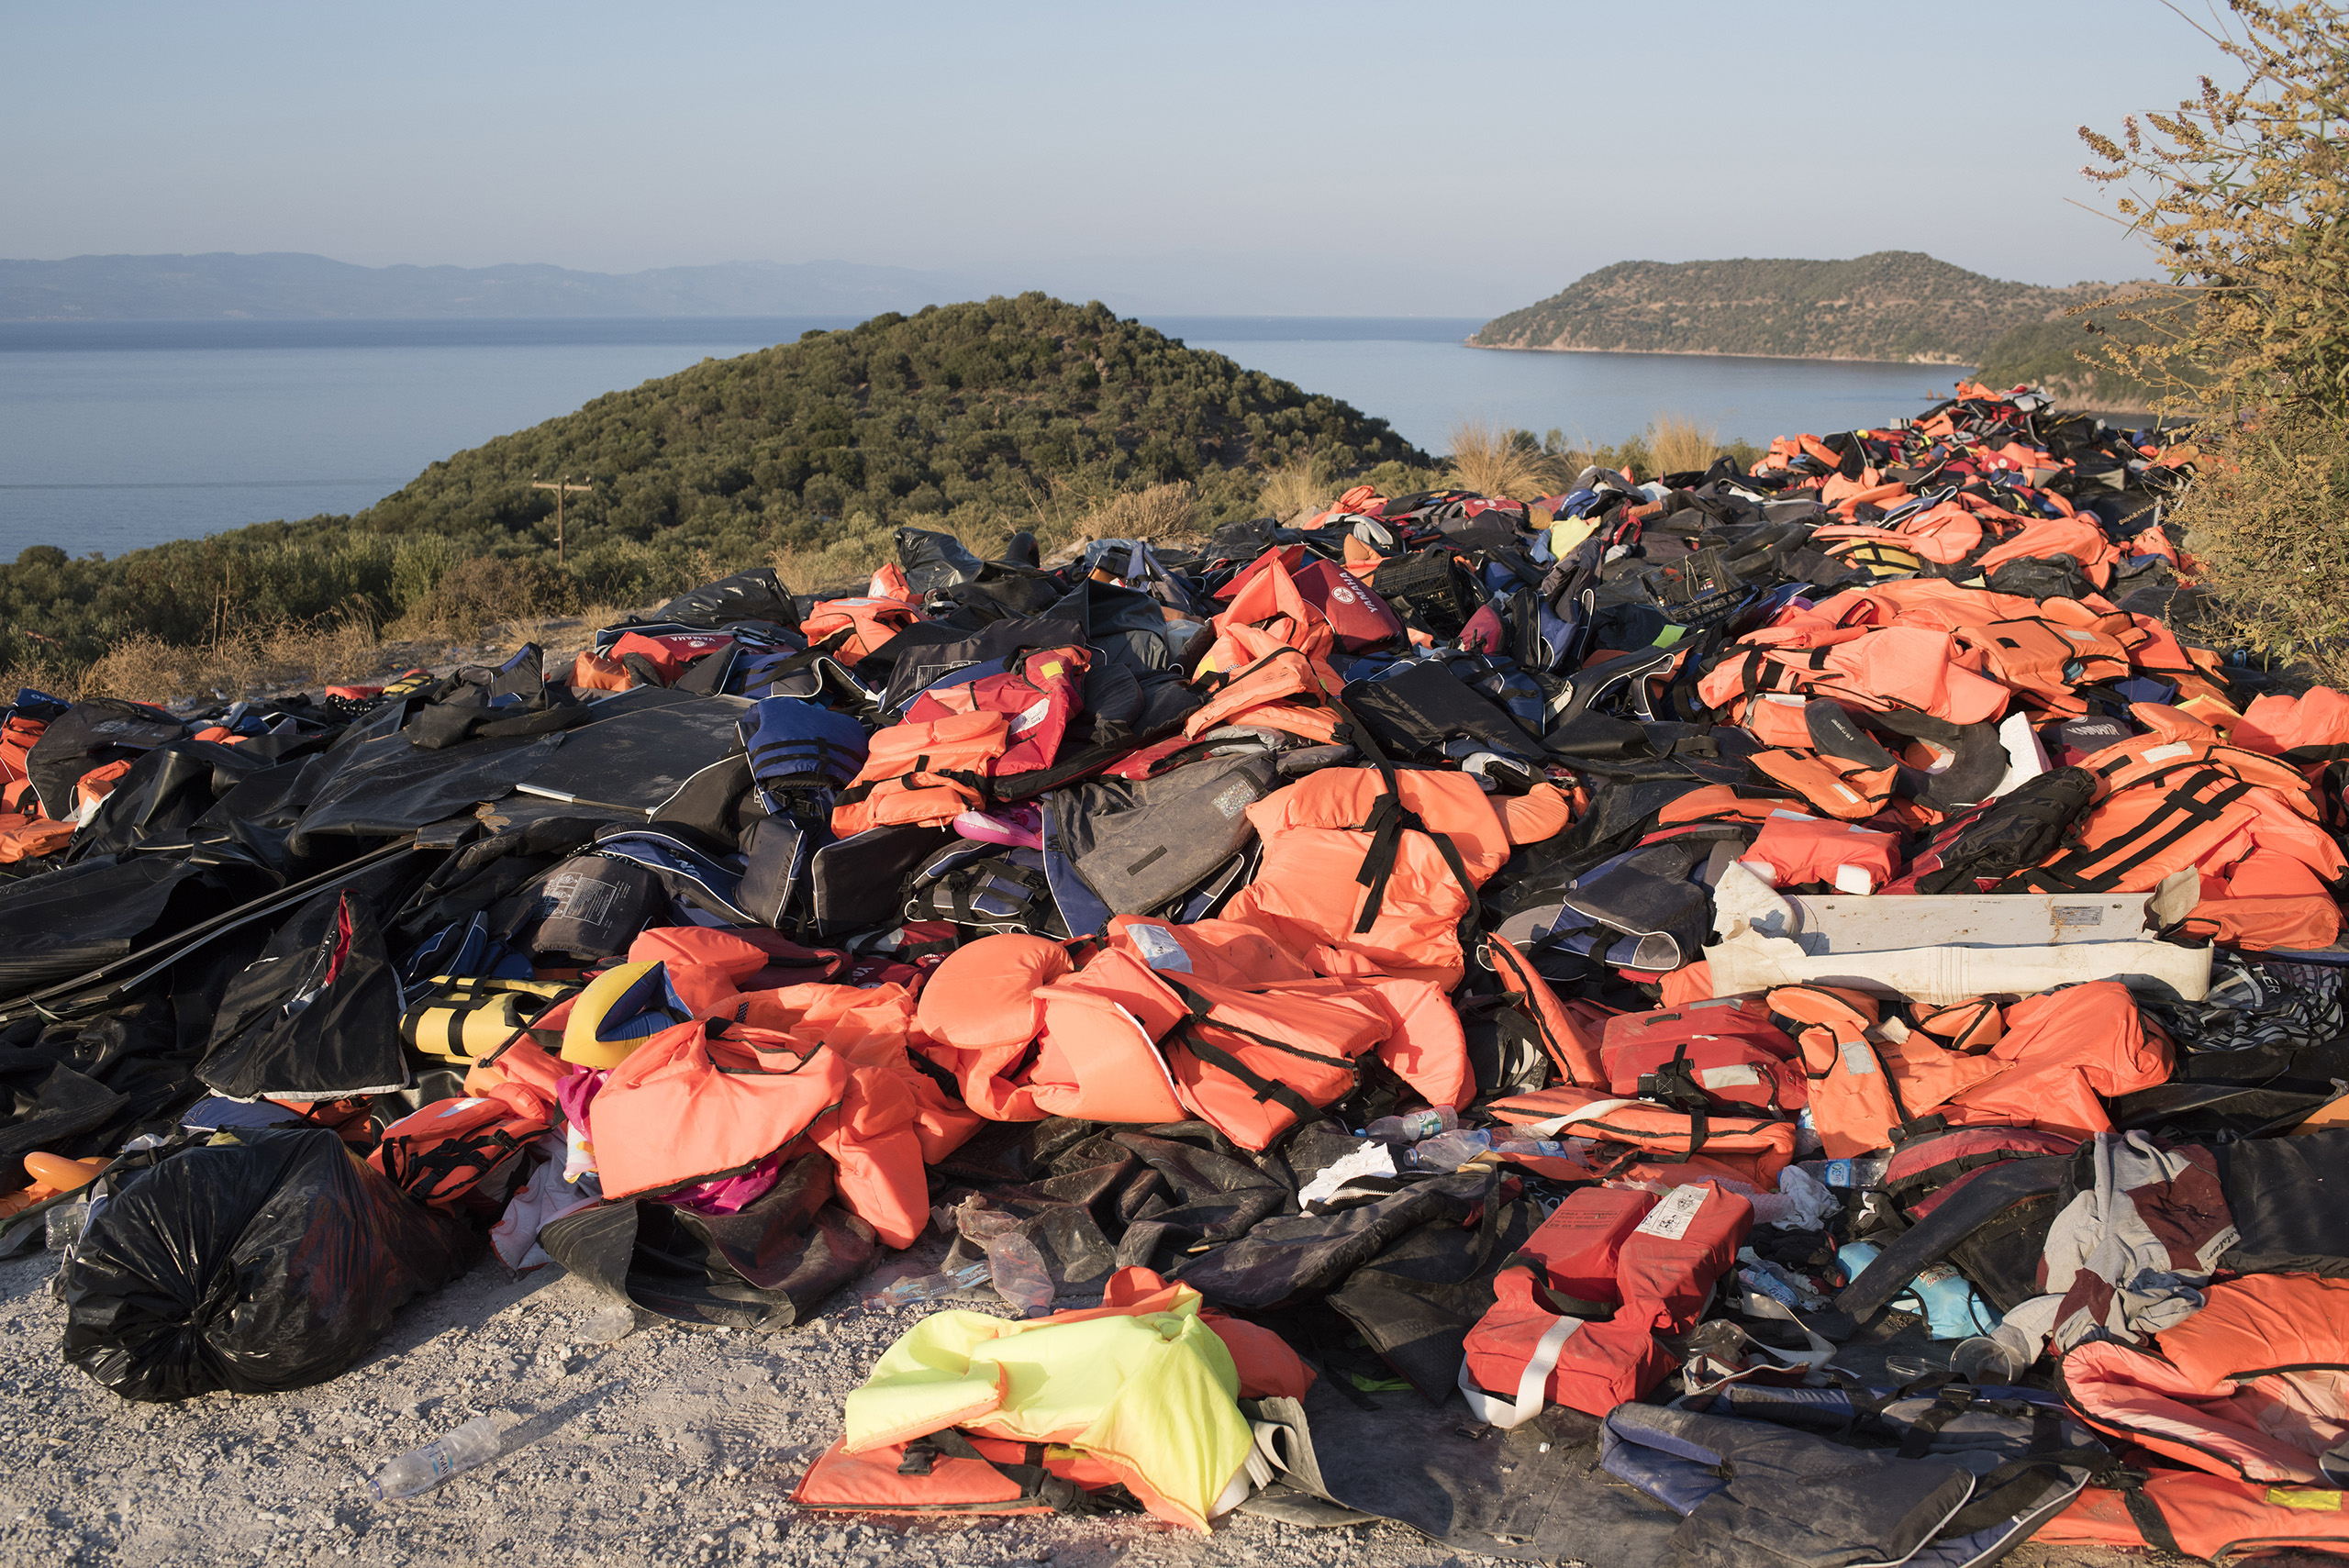 A beach  on the Greek island of Lesbos is festooned with orange life jackets and deflated rafts abandoned by migrants who are coming ashore near the village of Skala Sikamineas after navigating the 6-mile crossing from Turkey on  inflatable rafts.  Between 2,000 and 3,500 migrants now reach the island daily, riding on about 100 inflatable rafts. Sept., 2015.From  Witness the Resilience of Thousands of Refugees on Their Way to Europe